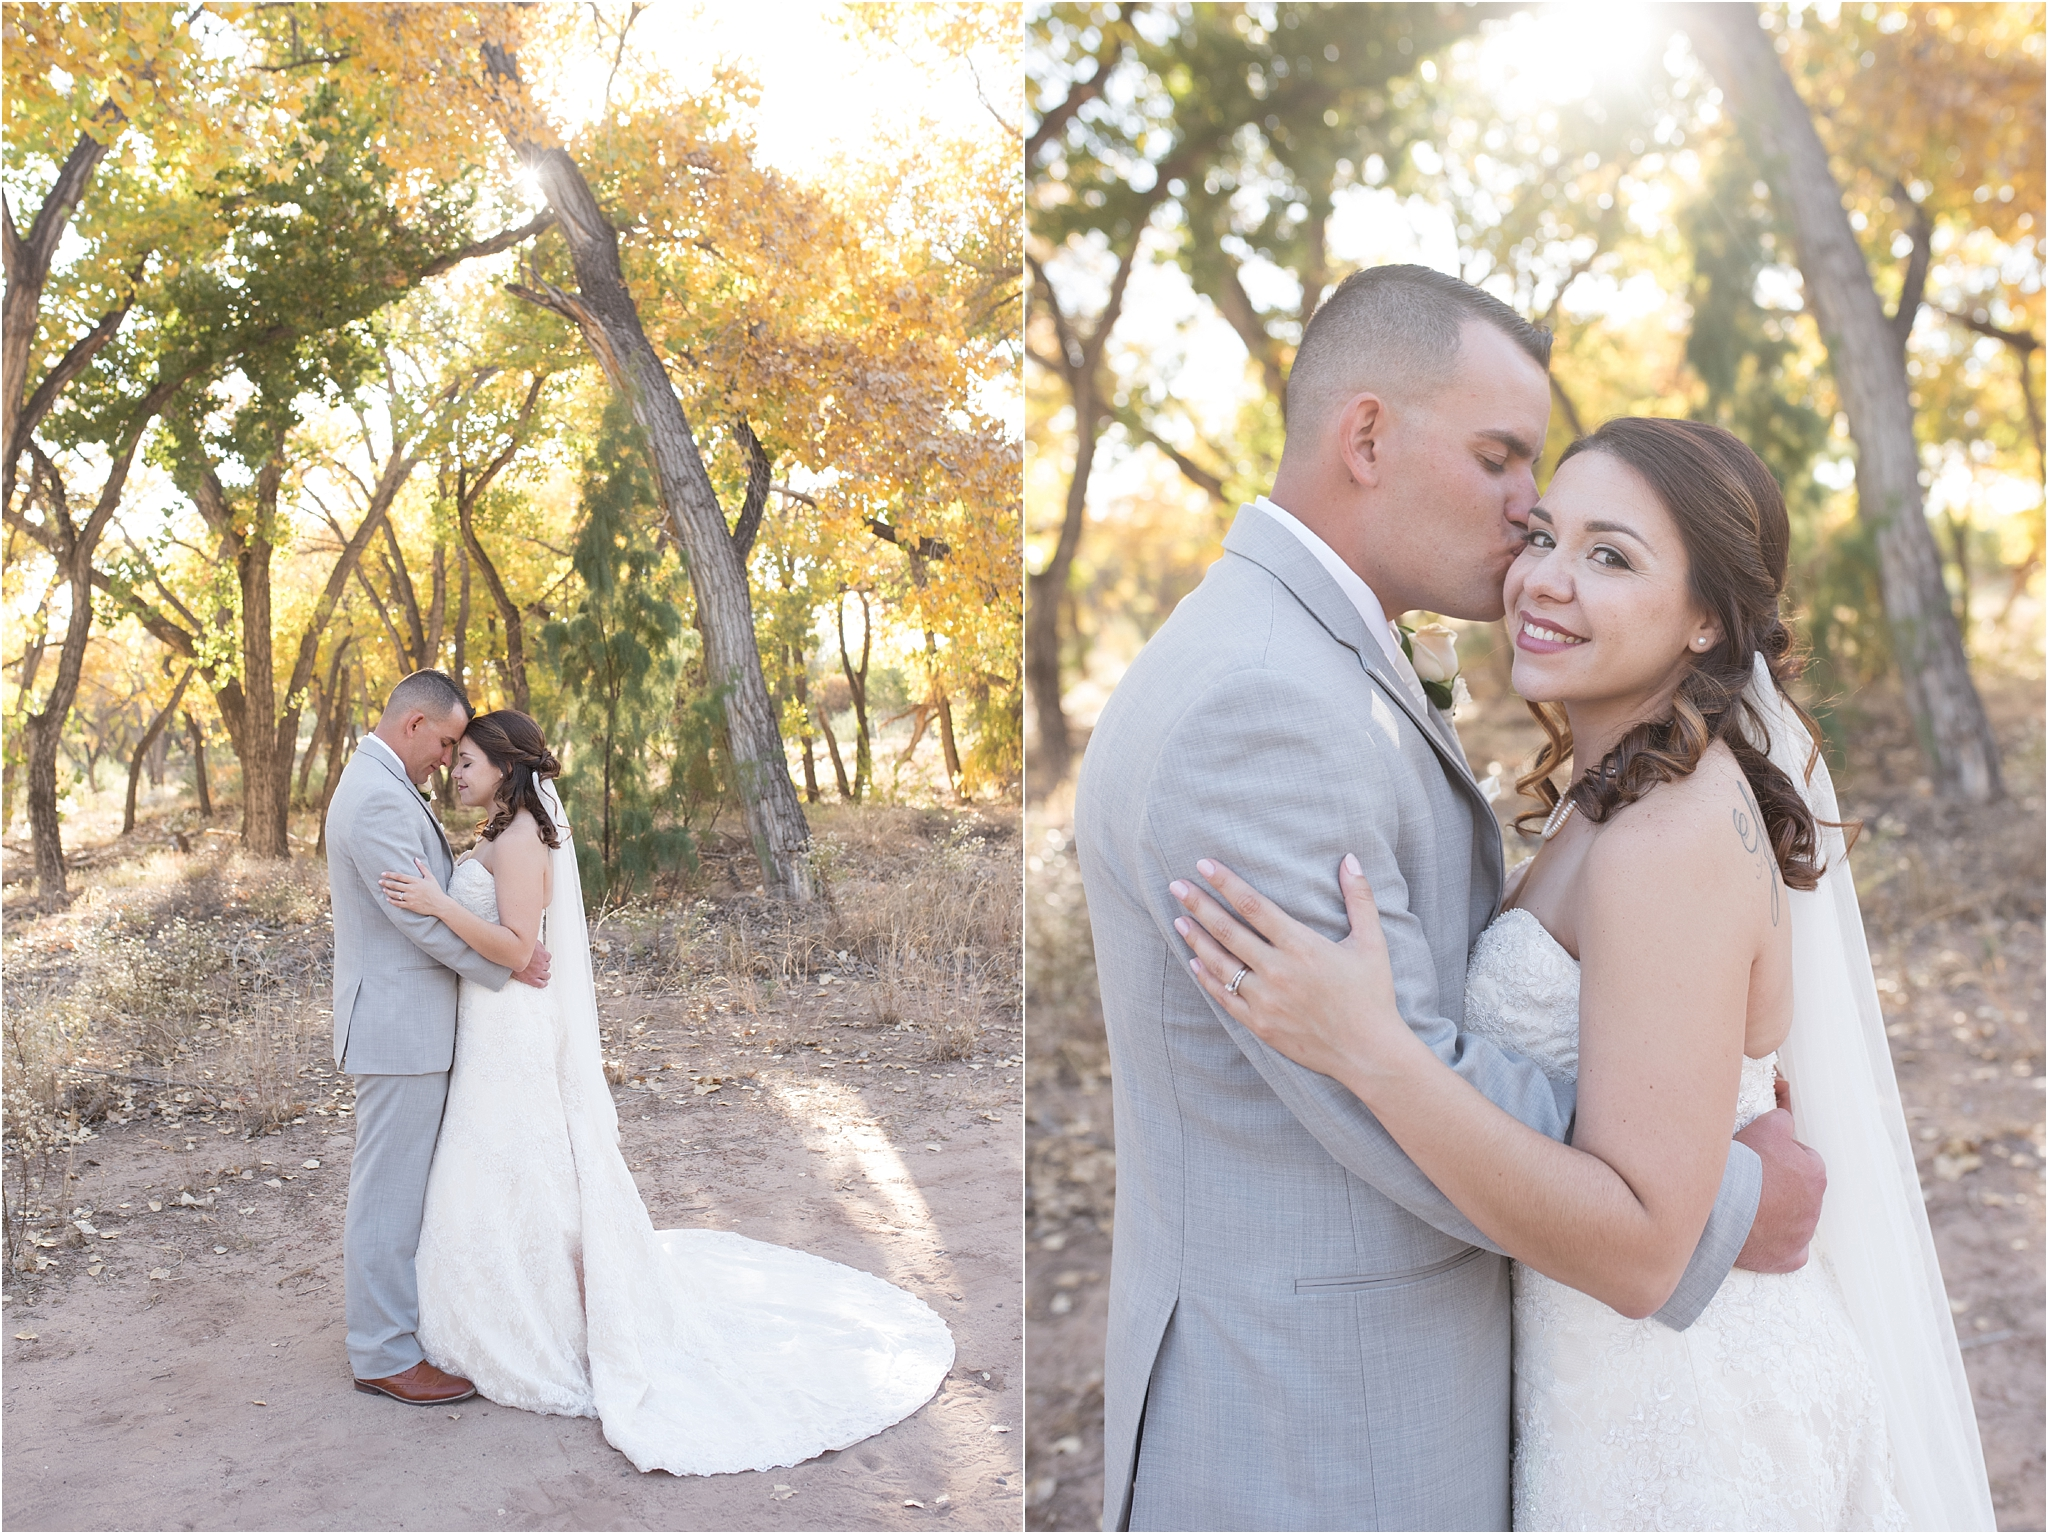 kayla kitts photography - albuquerque wedding photographer - hairpins and scissors - a cake odyssey - new mexico wedding photographer_0045.jpg